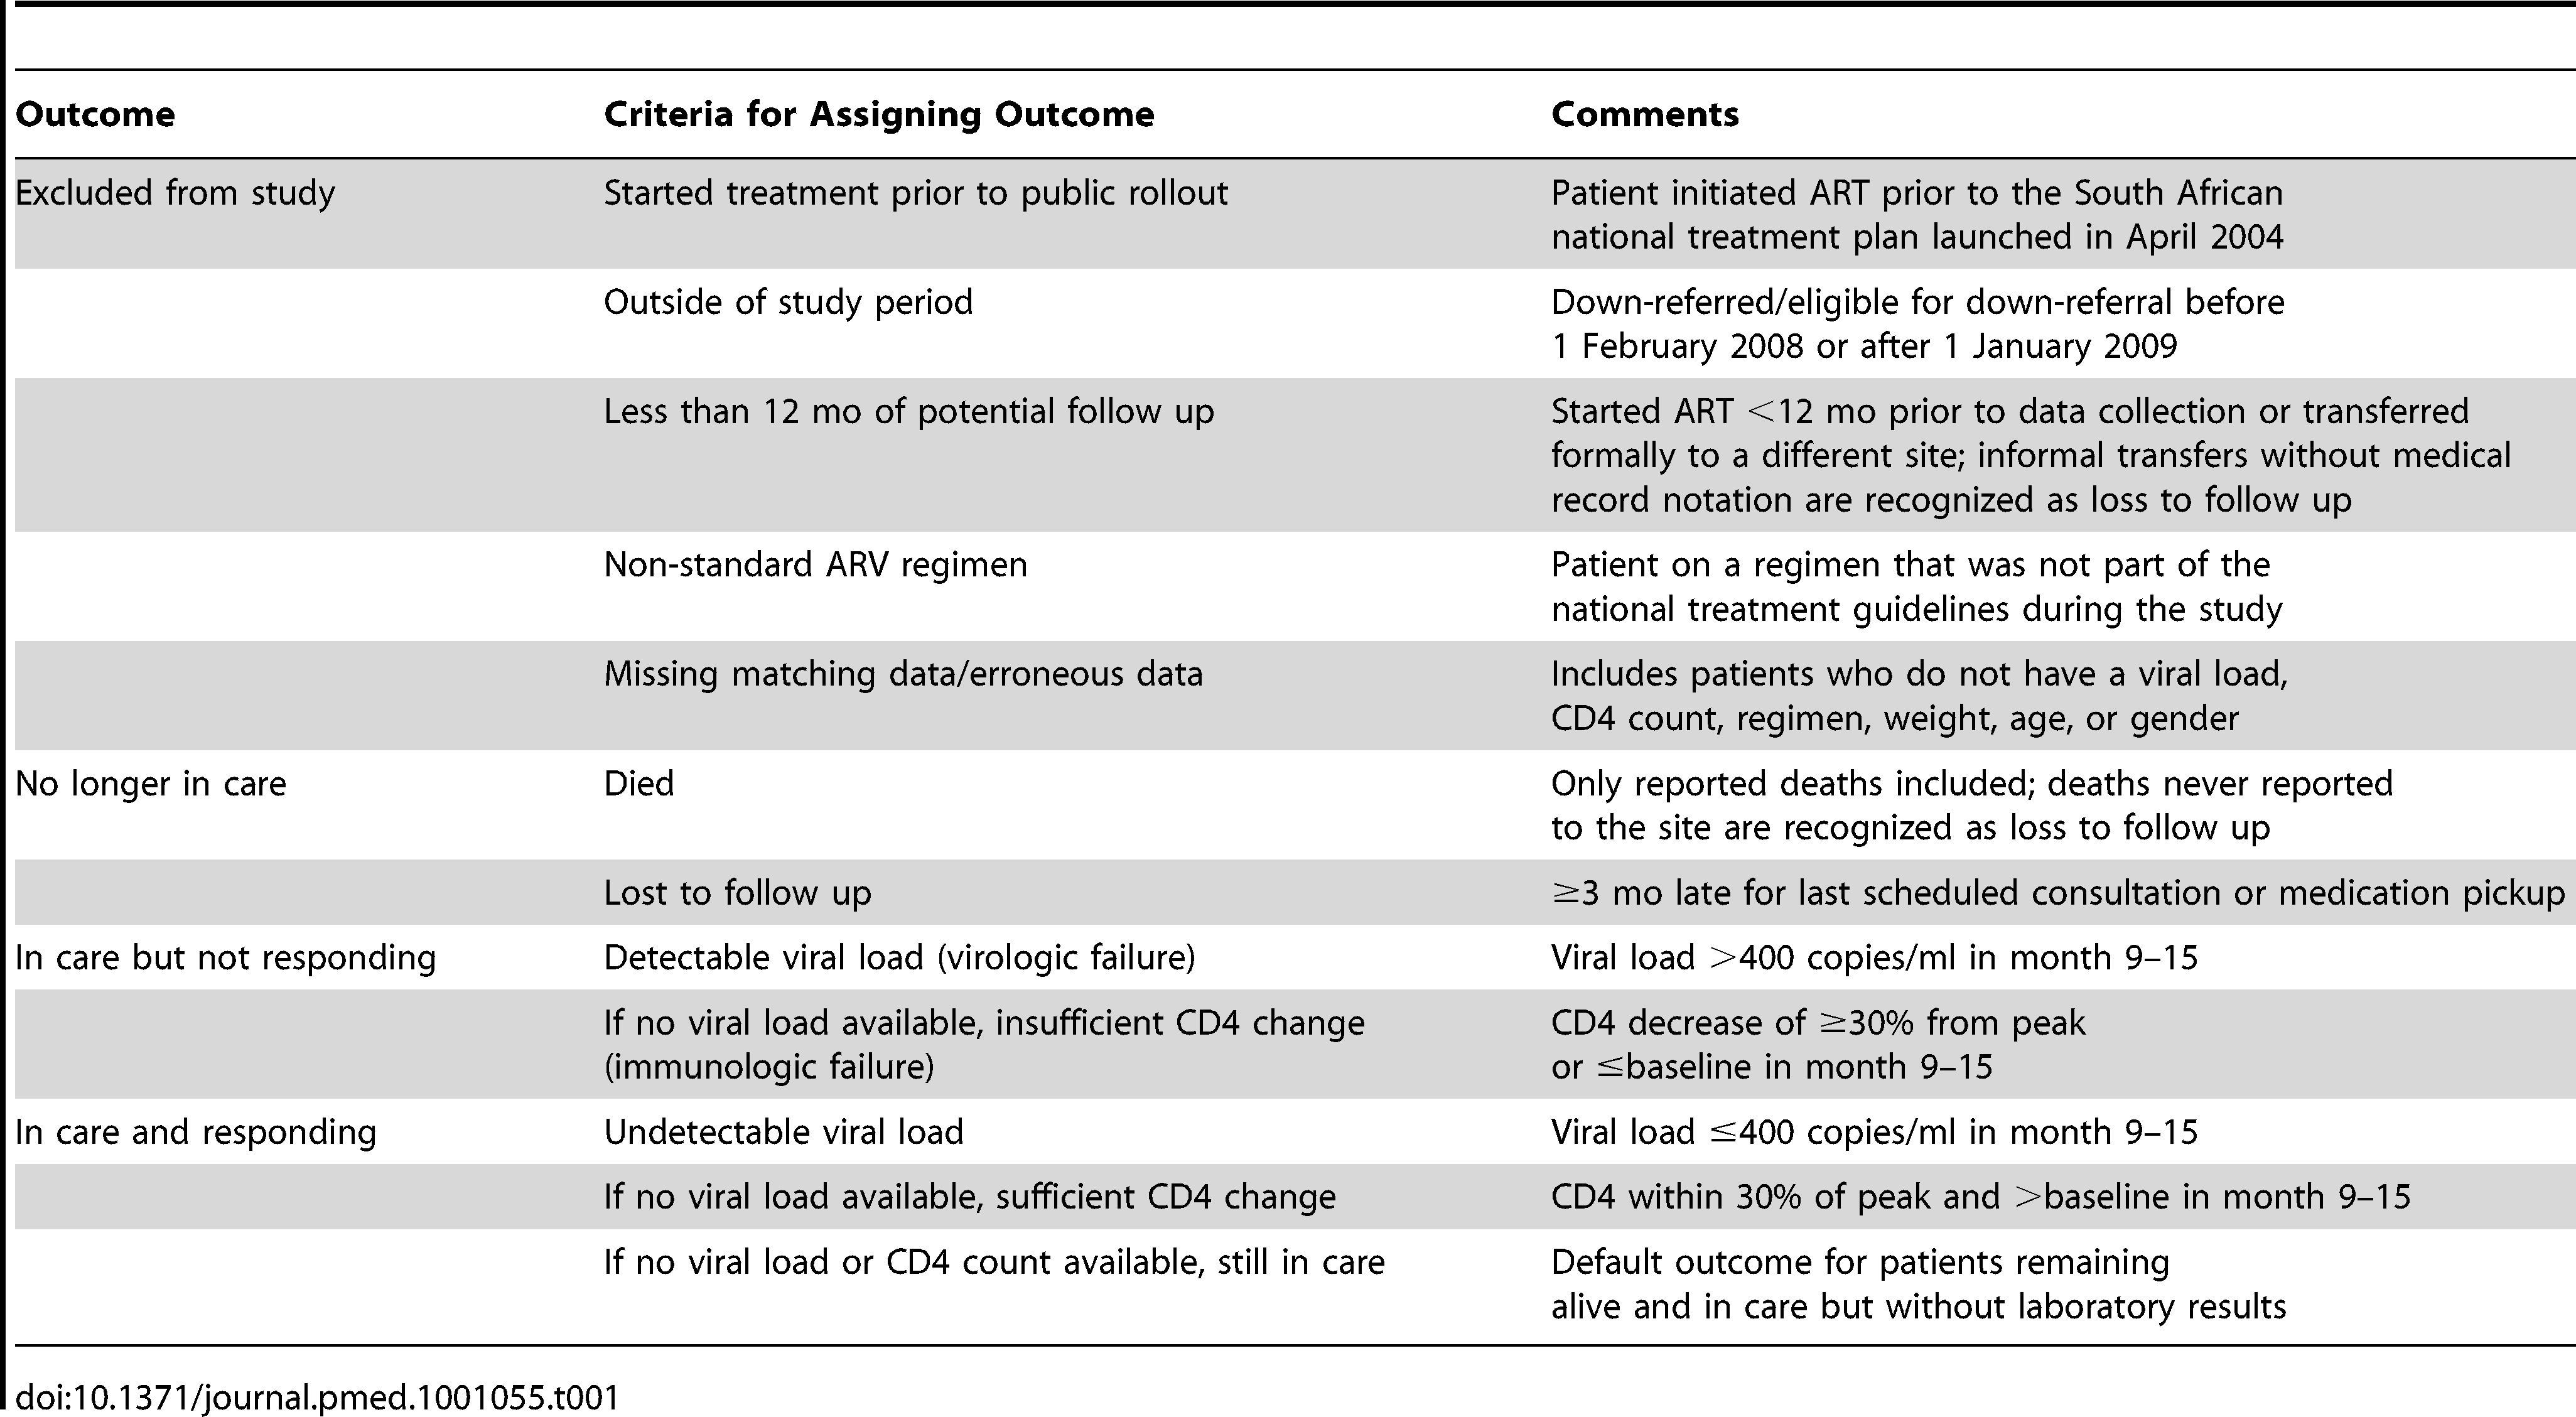 Criteria for assigning HIV treatment outcomes.